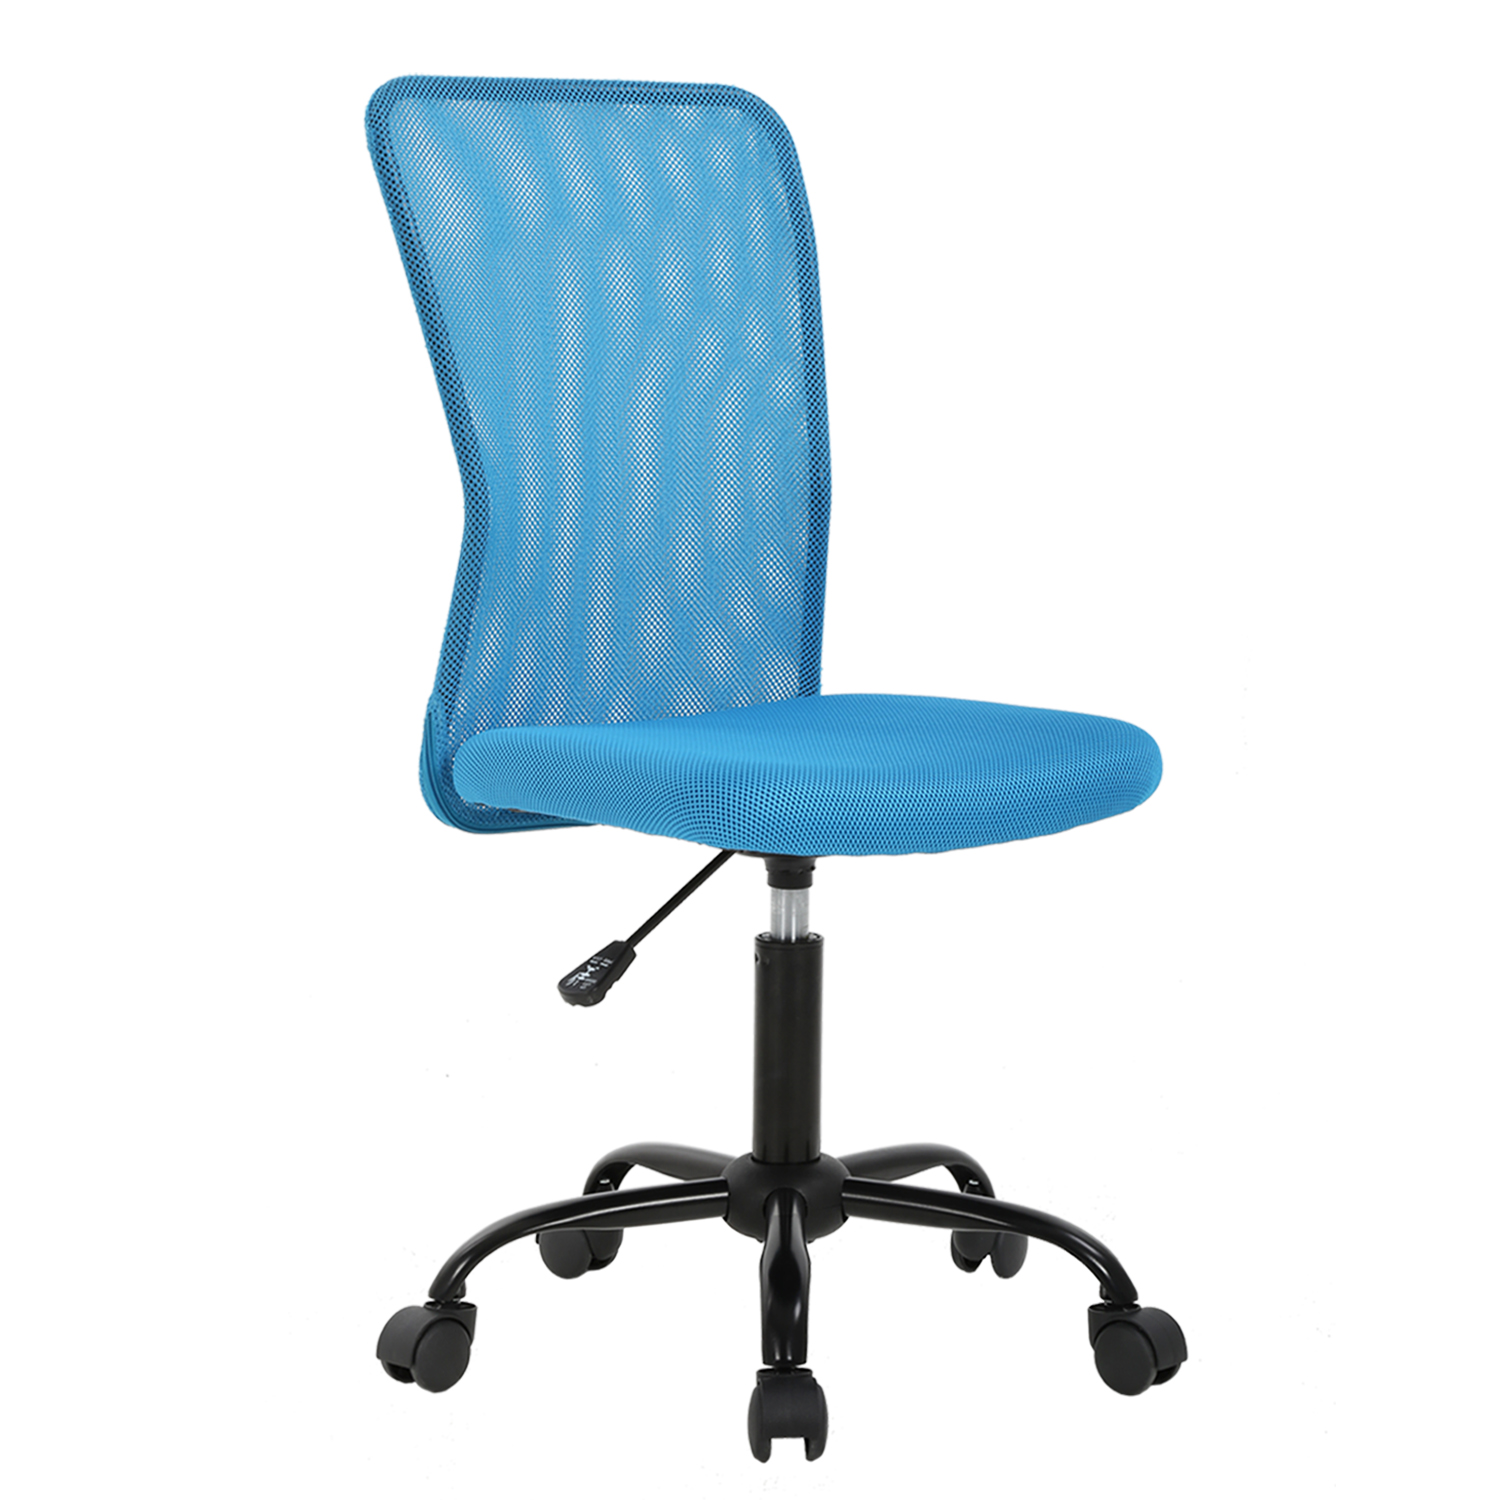 Picture of: Mesh Office Chair With Ergonomic Lumbar Support Cheap Desk Chair Computer Adjustable Swivel Rolling Chair For Home Office Blue Walmart Com Walmart Com